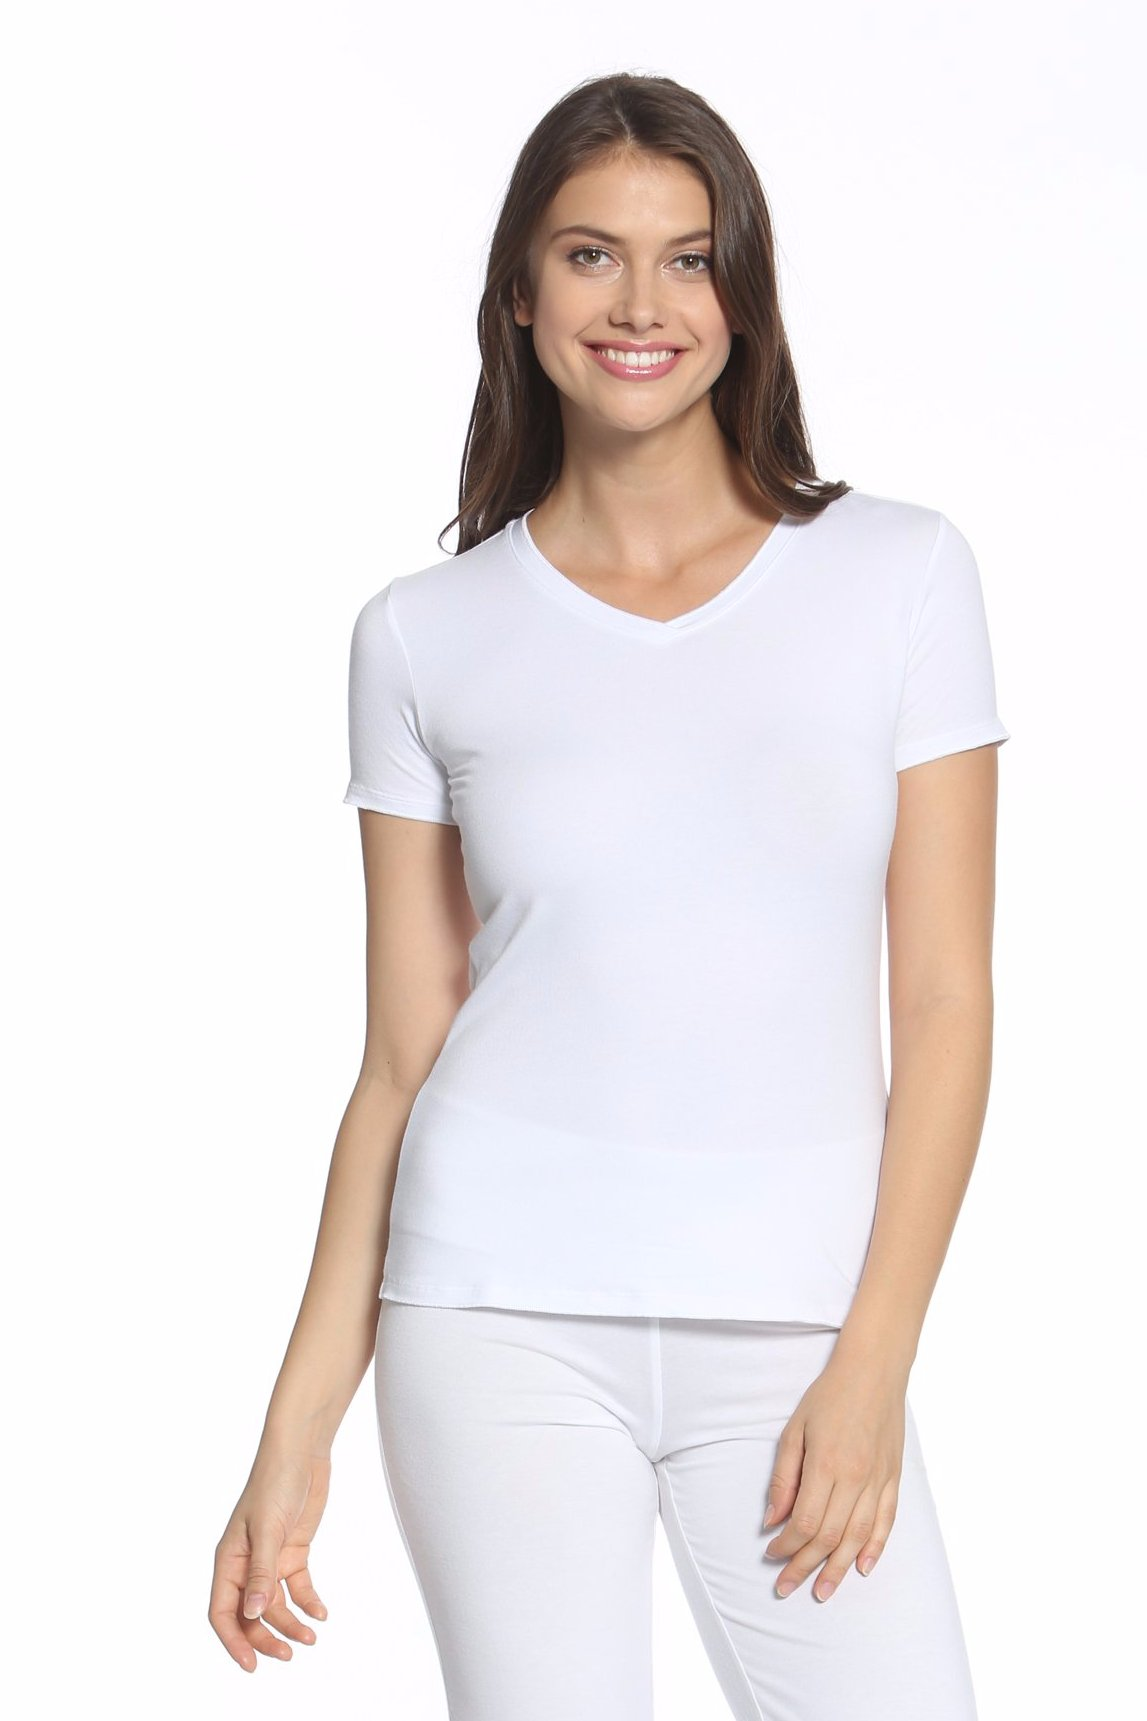 Beyond the Basics Short Sleeve V Neck Top - Basic Colors